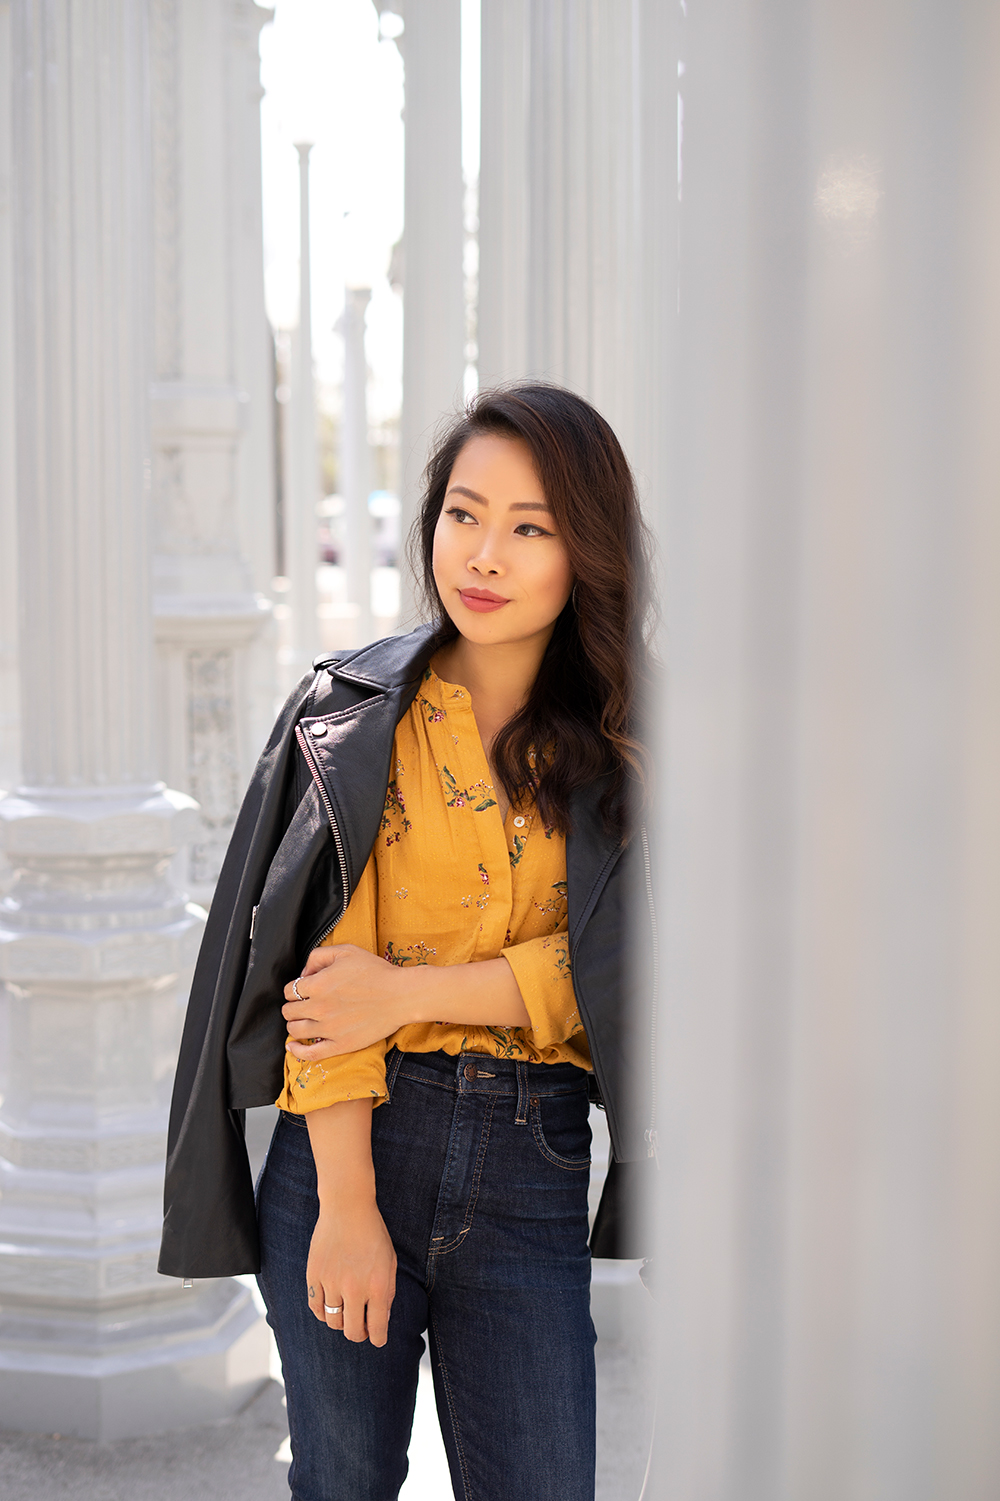 05-luckybrand-denim-jeans-leatherjacket-lacma-urbanlights